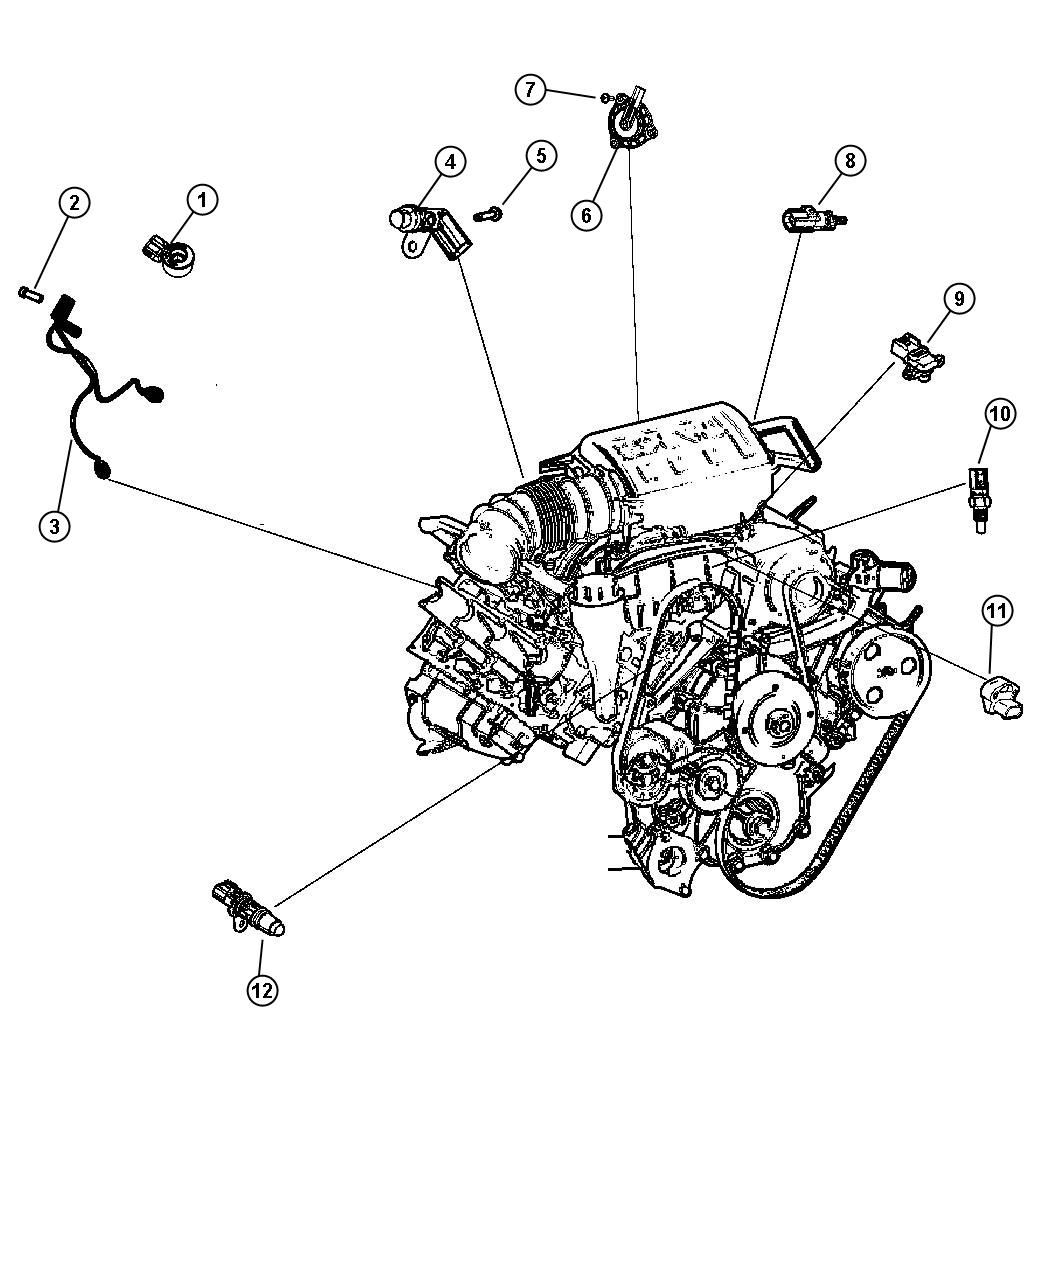 Dodge Durango Wiring. Used for: knock, oil pressure, and